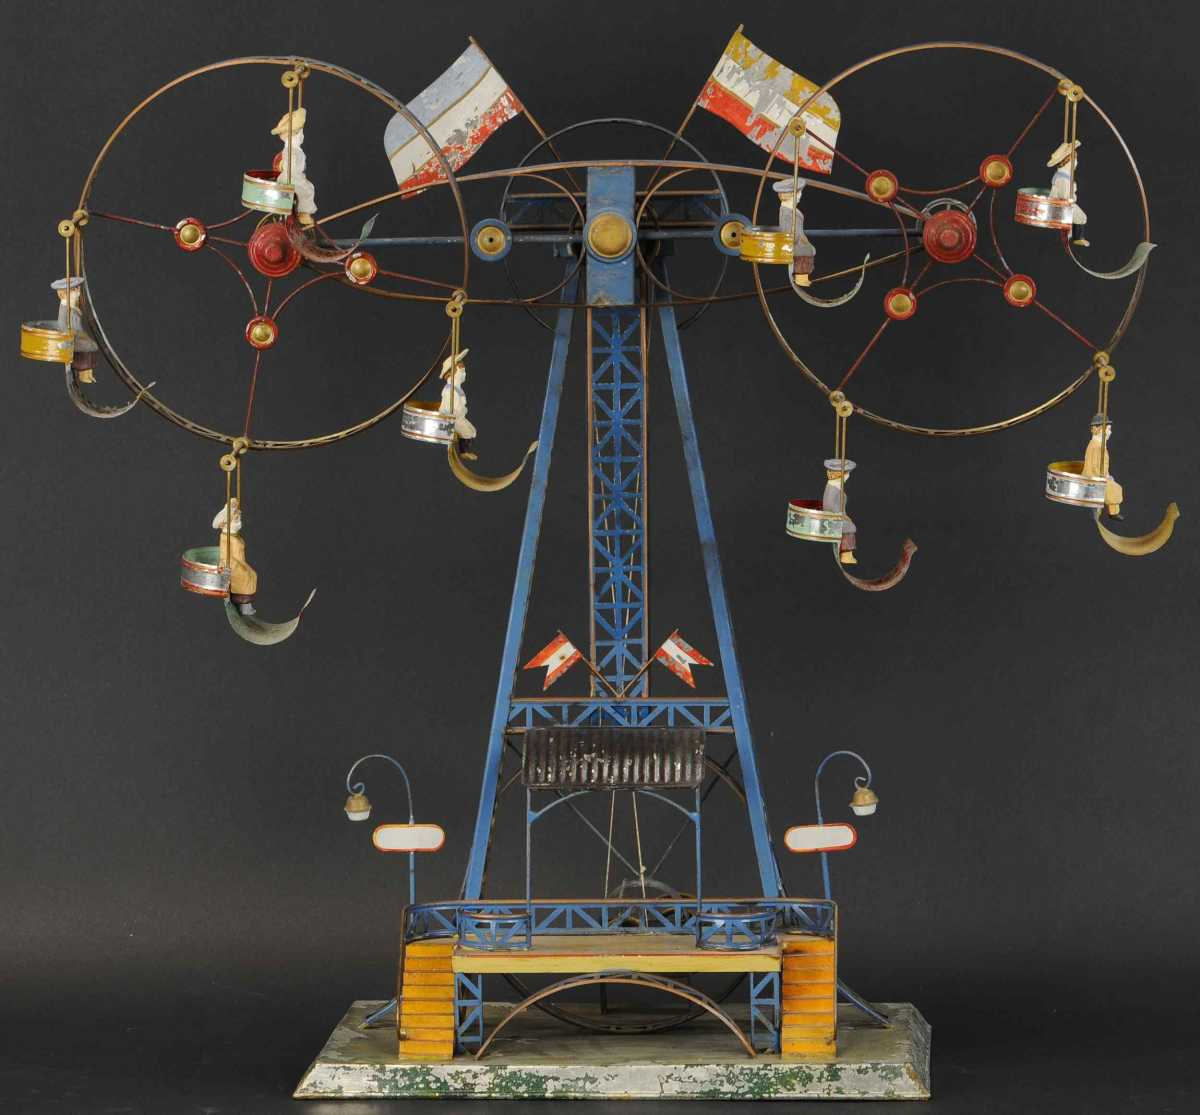 Mohr & Krauss Double Ferris Wheel, $138,000. A true museum-grade toy and a fantastic highlight piece of the Schroeder collection, this immense amusement features two large spinning wheels which also revolve around a central tower, original composition figures are seated in the suspended gondolas, and the toy can be hand cranked or powered by steam via a pulley system. Abby and Aaron were driving through a small town in Pennsylvania when they passed a closed barber shop with this toy prominently displayed in the front window. They spent the night and visited the shop the next morning. Aaron left with a haircut and Abby had this Double Ferris Wheel in her arms.